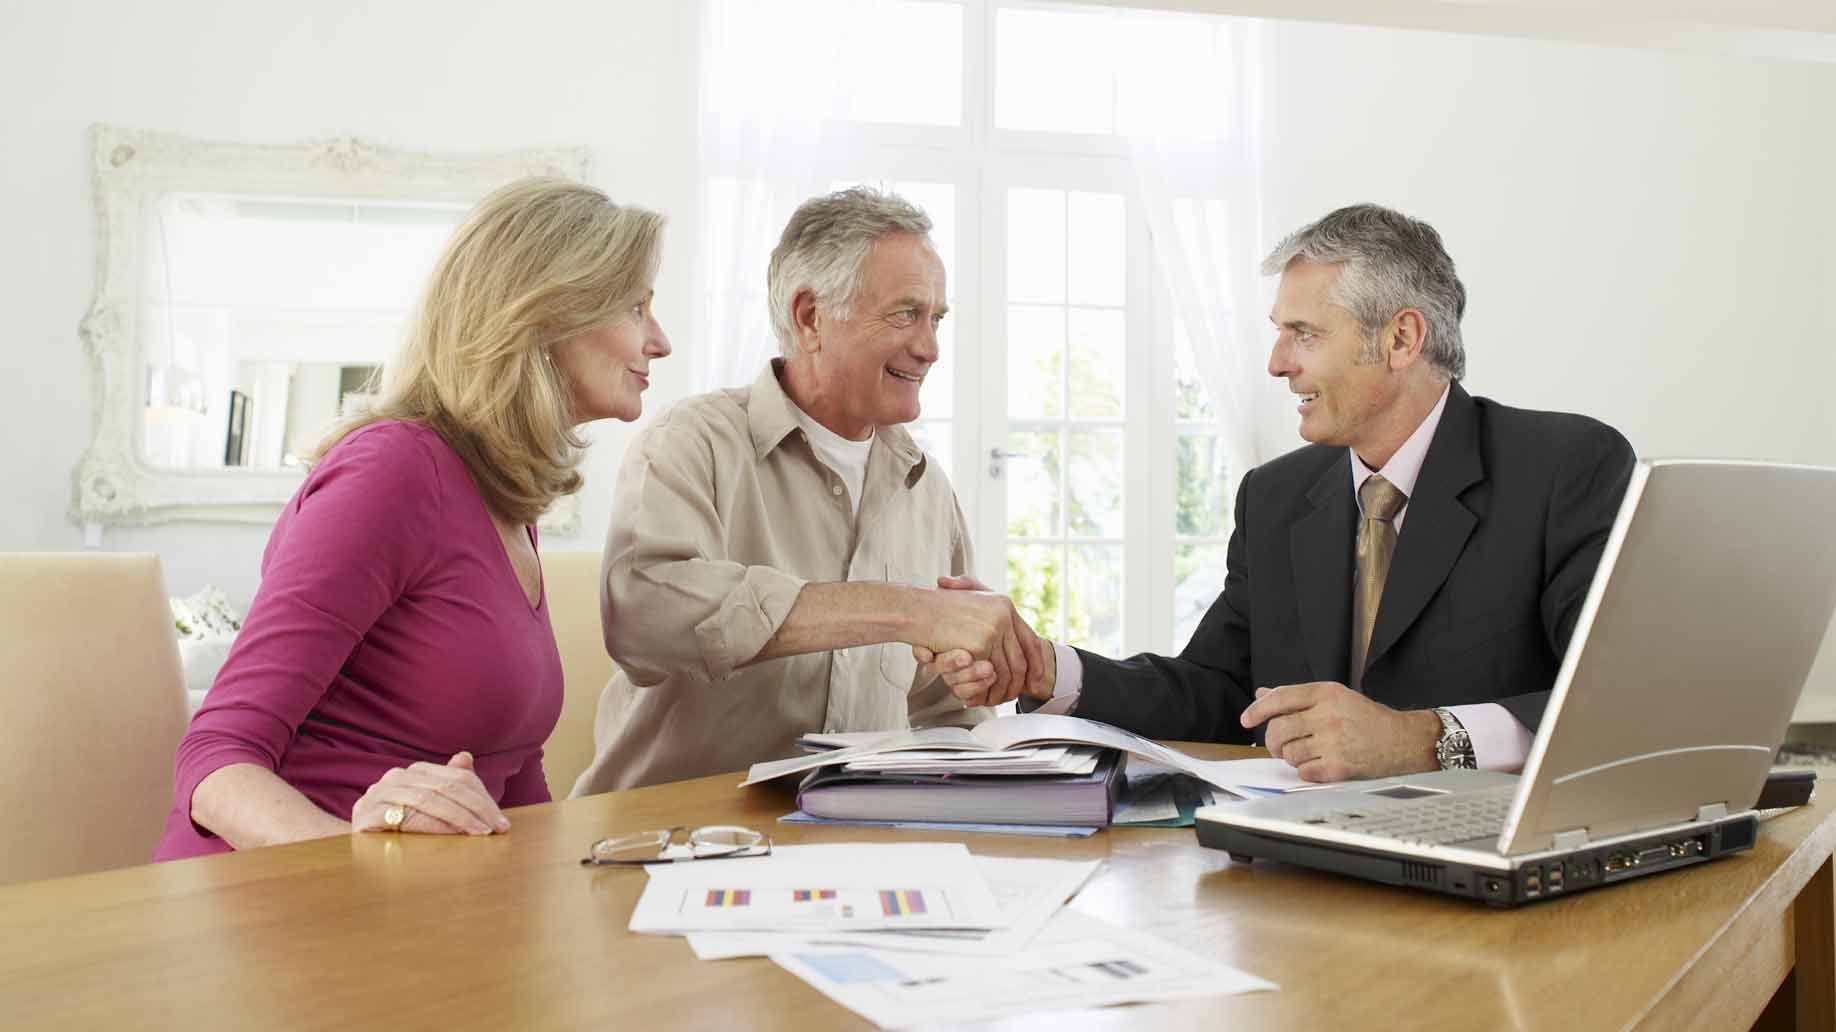 Choose The Varied Roles Of Renowned Financial Advisor